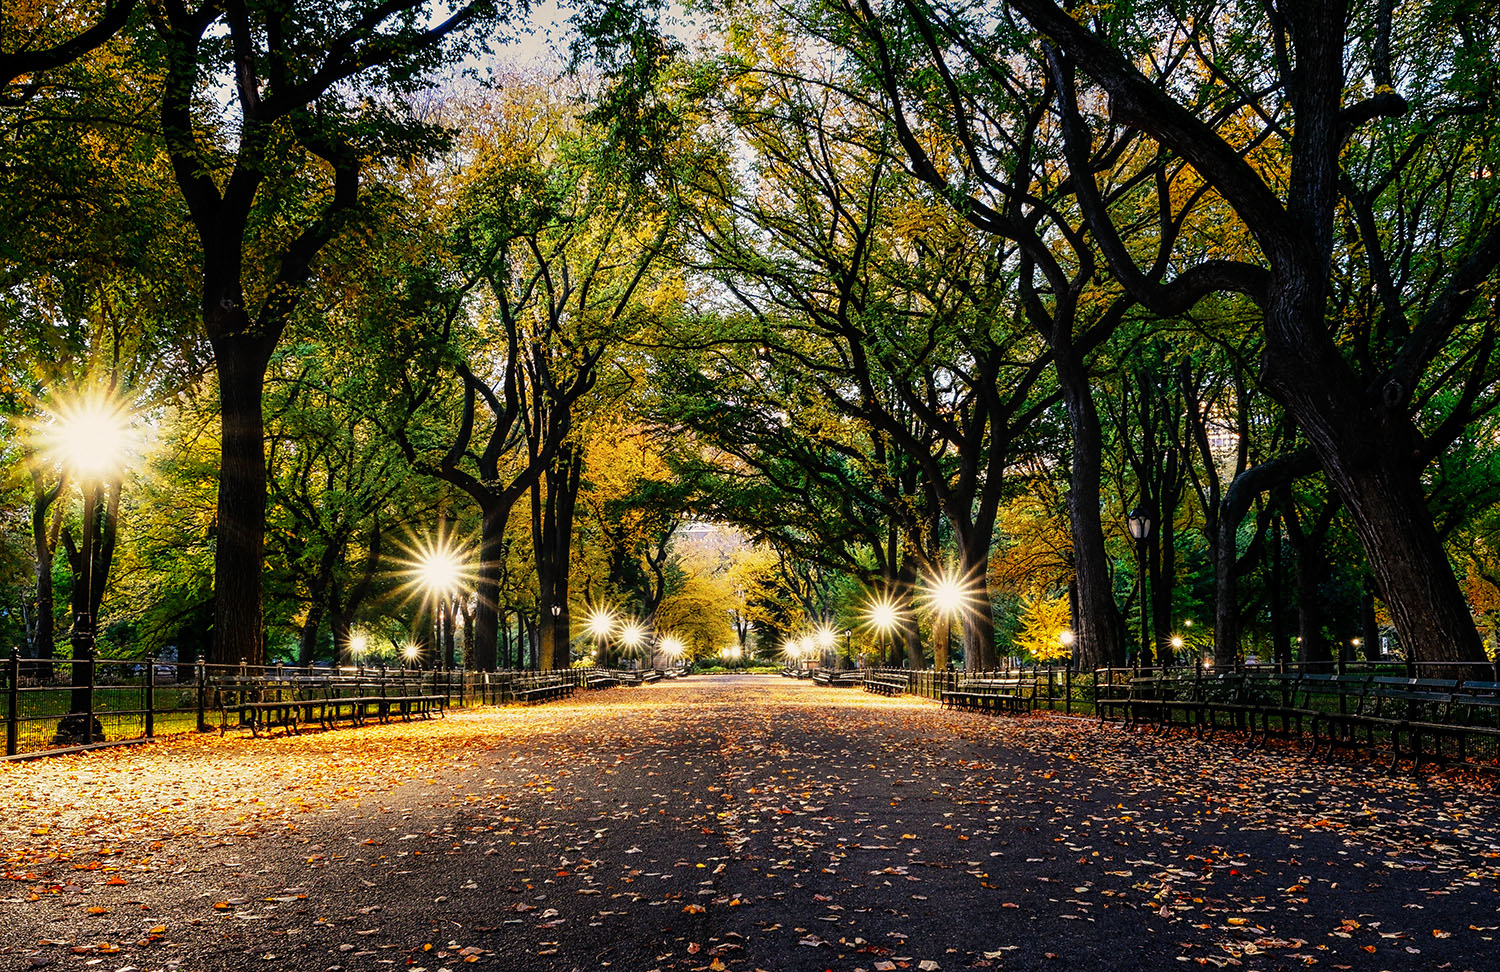 The Mall in Central Park before Sunrise.